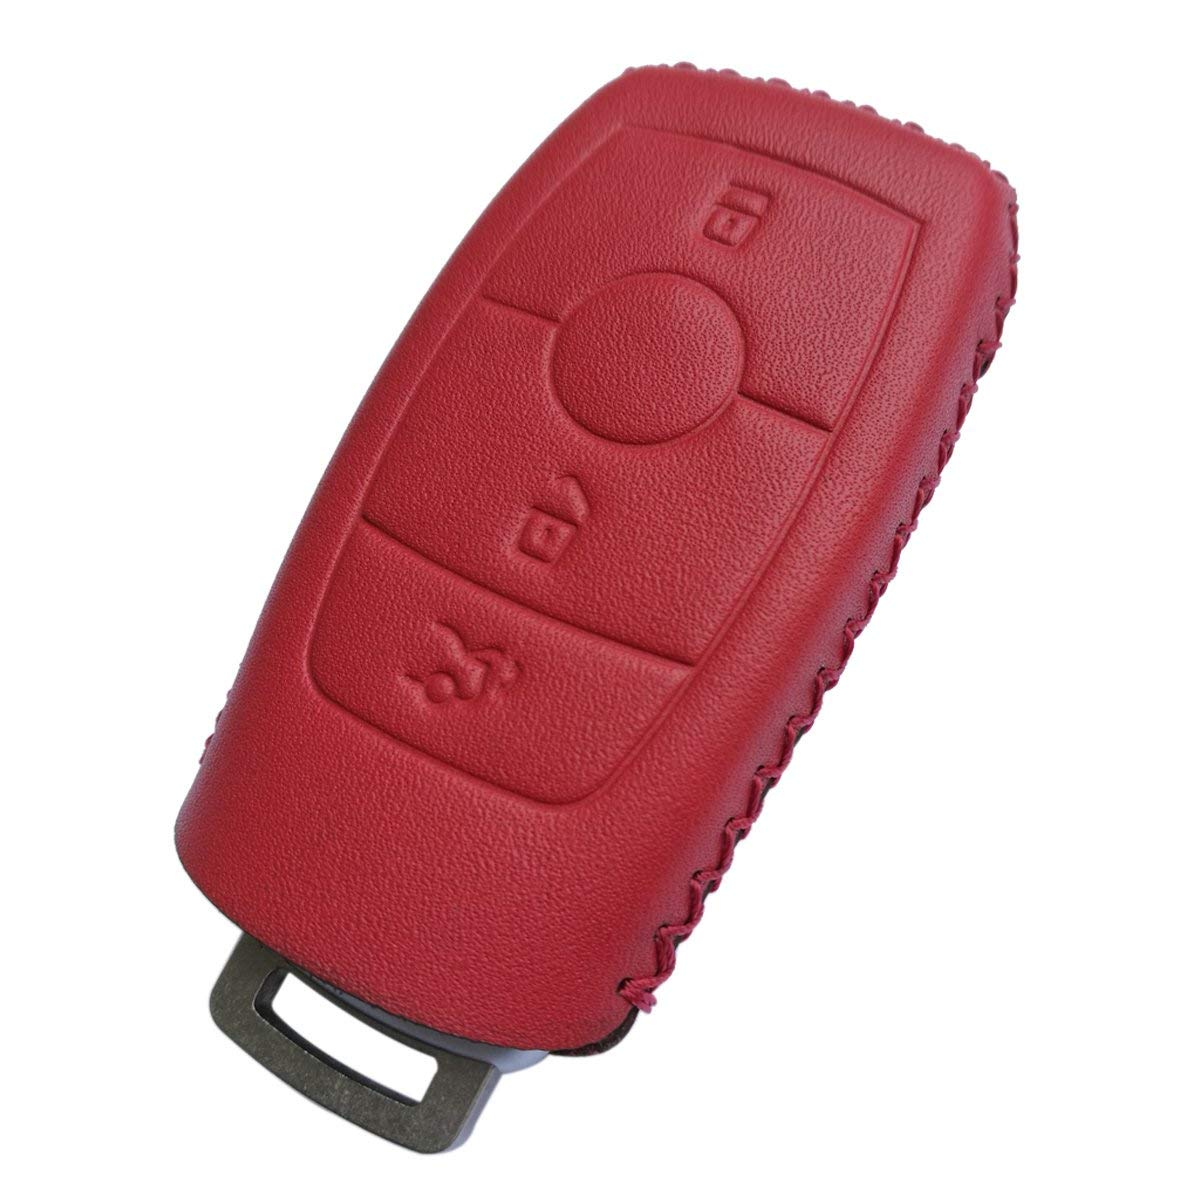 Coolbestda Leather Key Fob Remote Cover Skin Keyless Jacket Protector Case Accessories for Mercedes benz E-Class (2017-up) E300 E400 E63 S-Class (2018-up) S450 S550e S560 S63